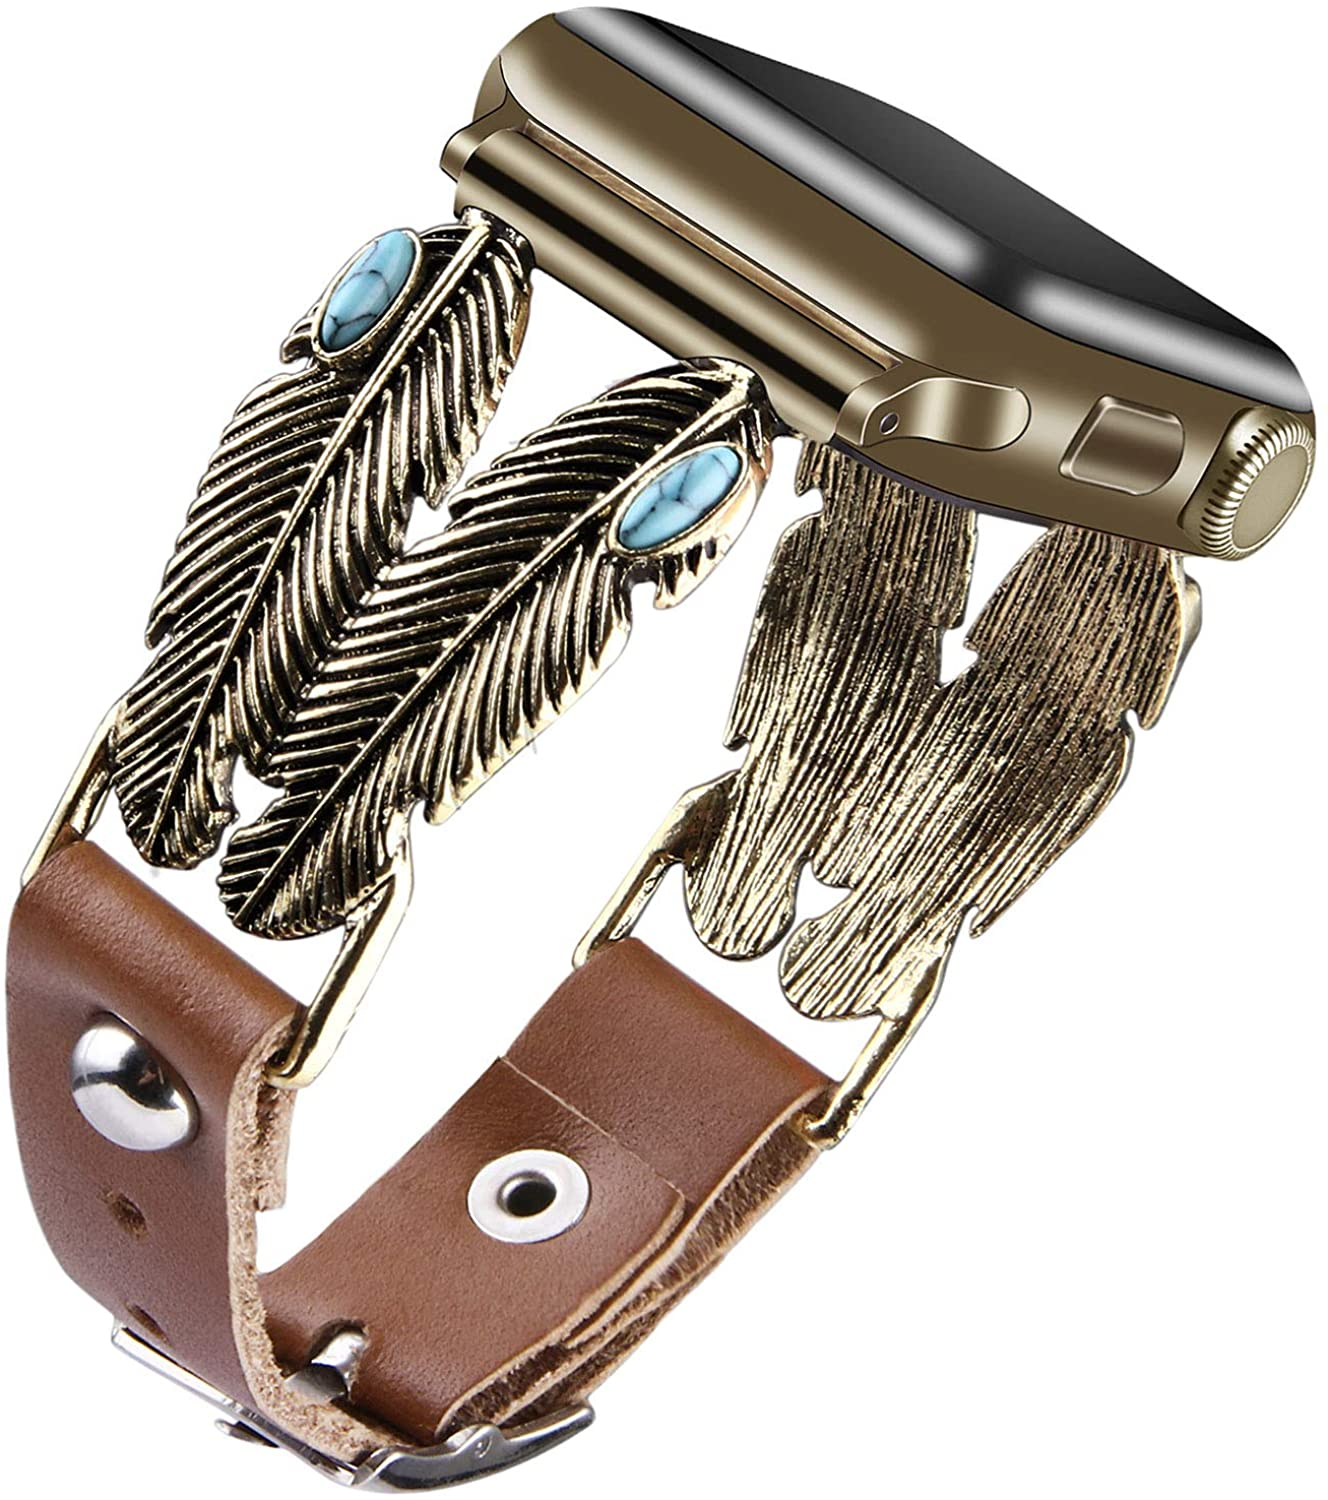 VIQIV Boho Hippie Bands Compatible with Apple Watch 38mm 40mm 42mm 44mm iwatch SE Series 6 5 4 3 2 1 for Women Girls, Fancy Turquoise Studs Leather Cuff Bracelets Metallic Wristband Strap Accessories